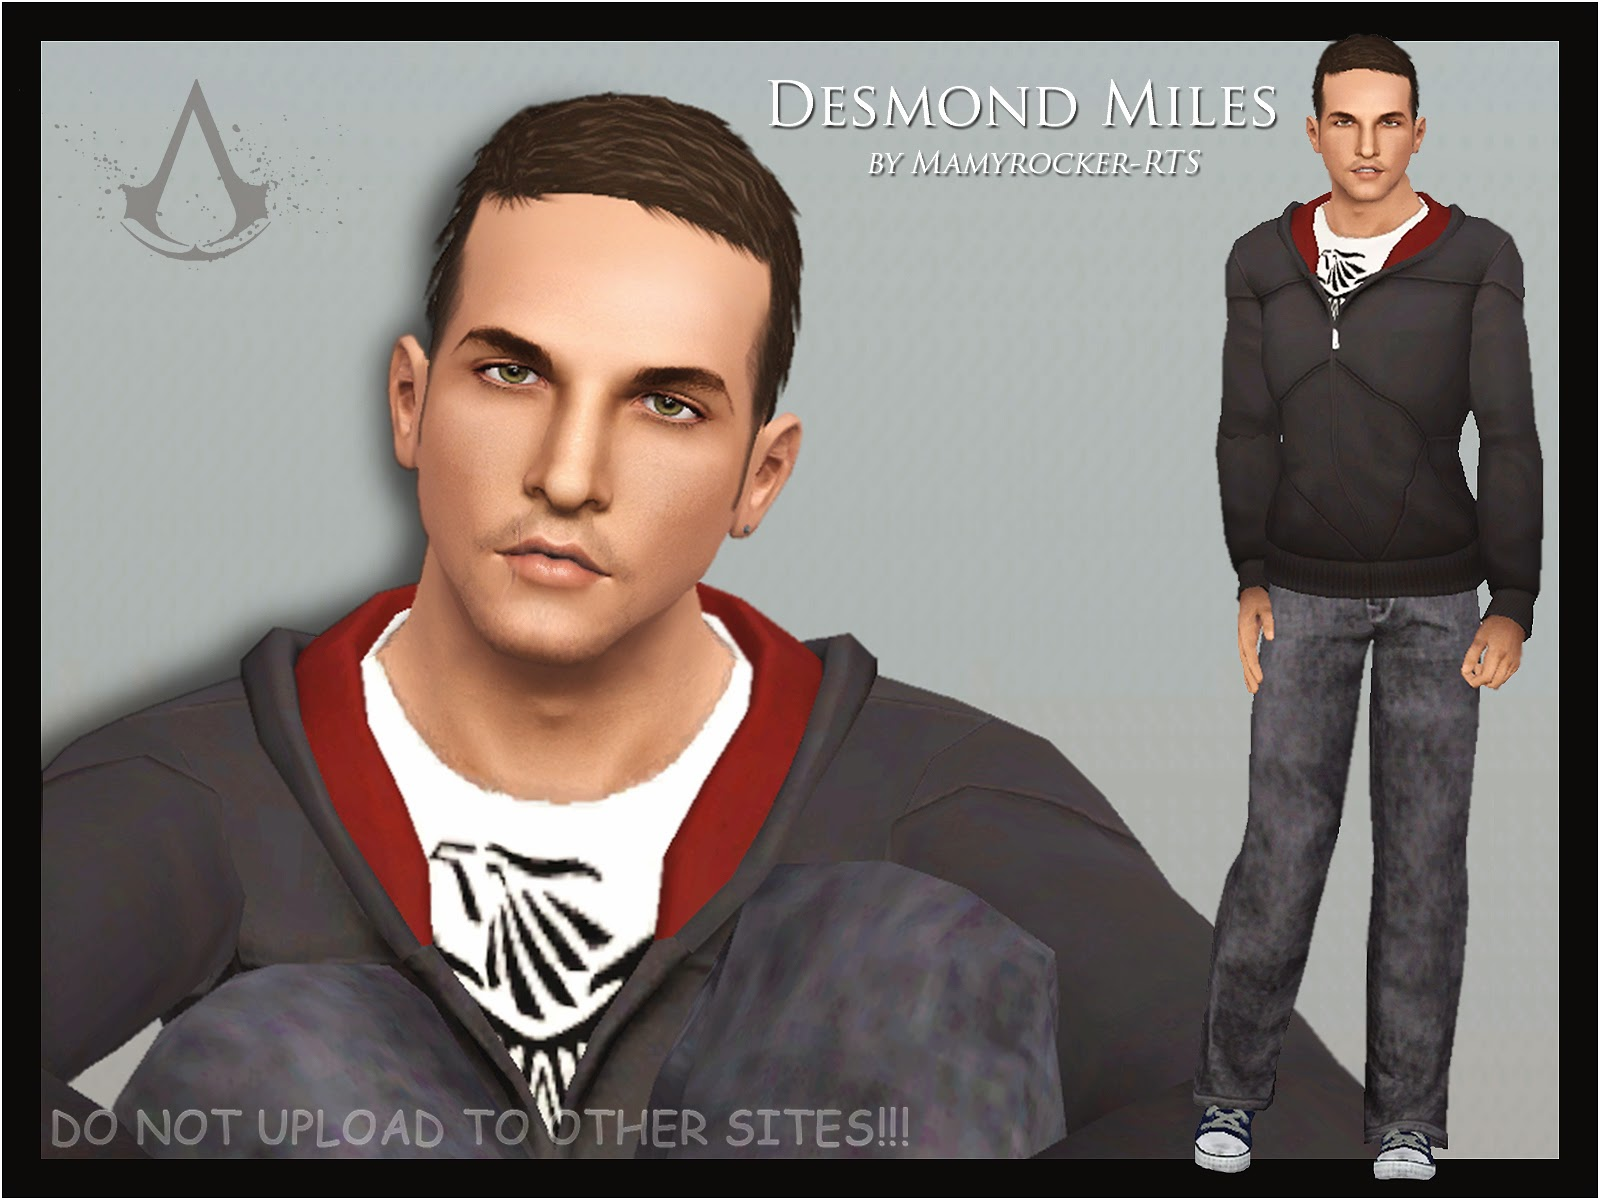 DESMOND MILES AssasSims Creed by Mamyrocker